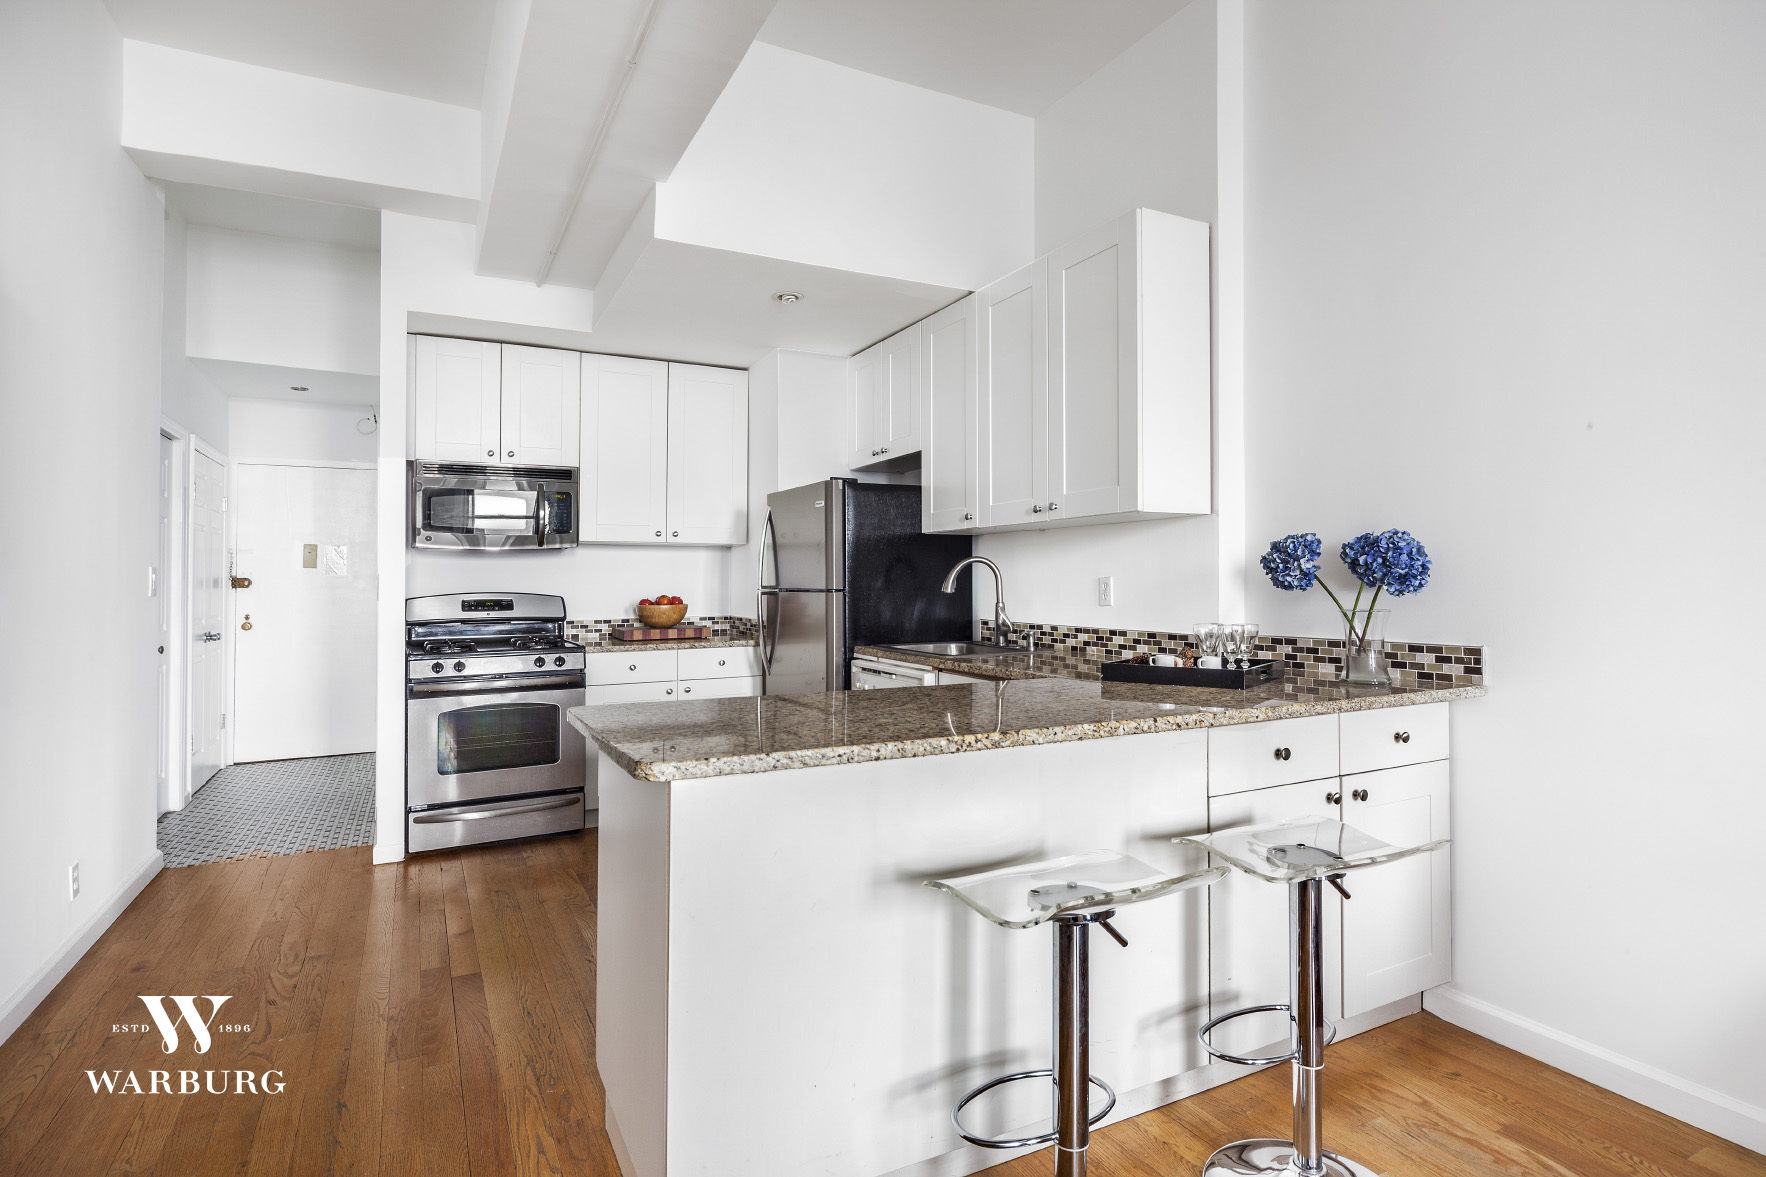 315 Seventh Avenue, Apt 20C Photo 1 - WR-1408545